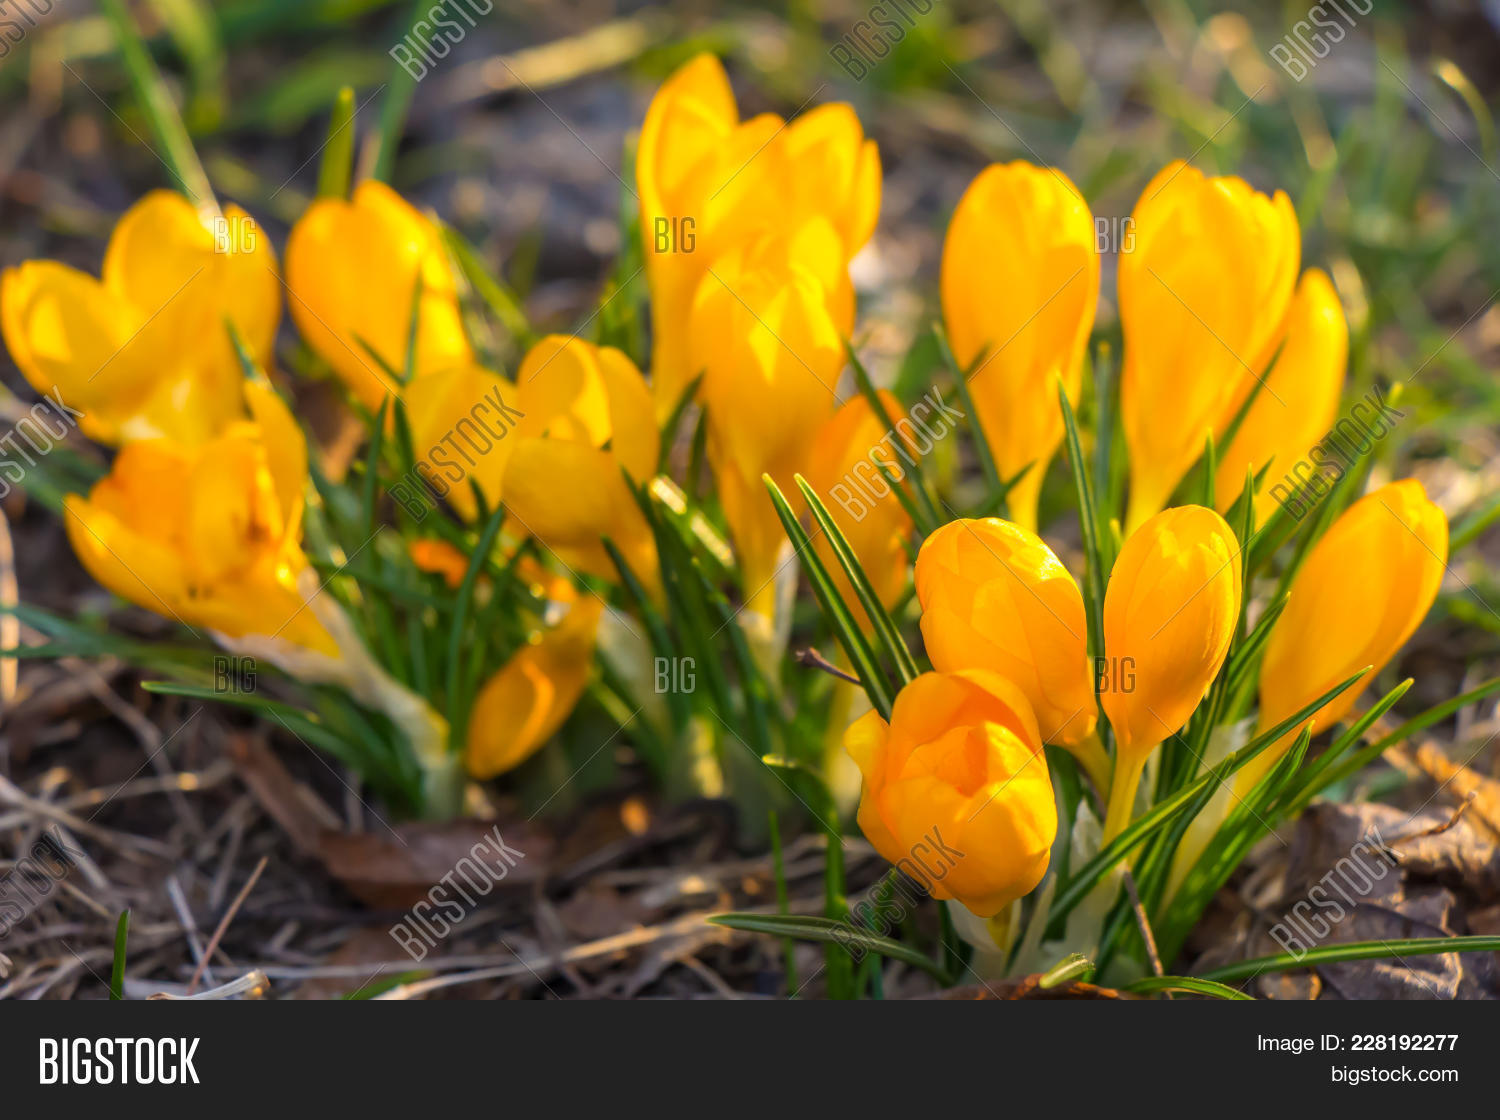 Crocus Plural Image Photo Free Trial Bigstock